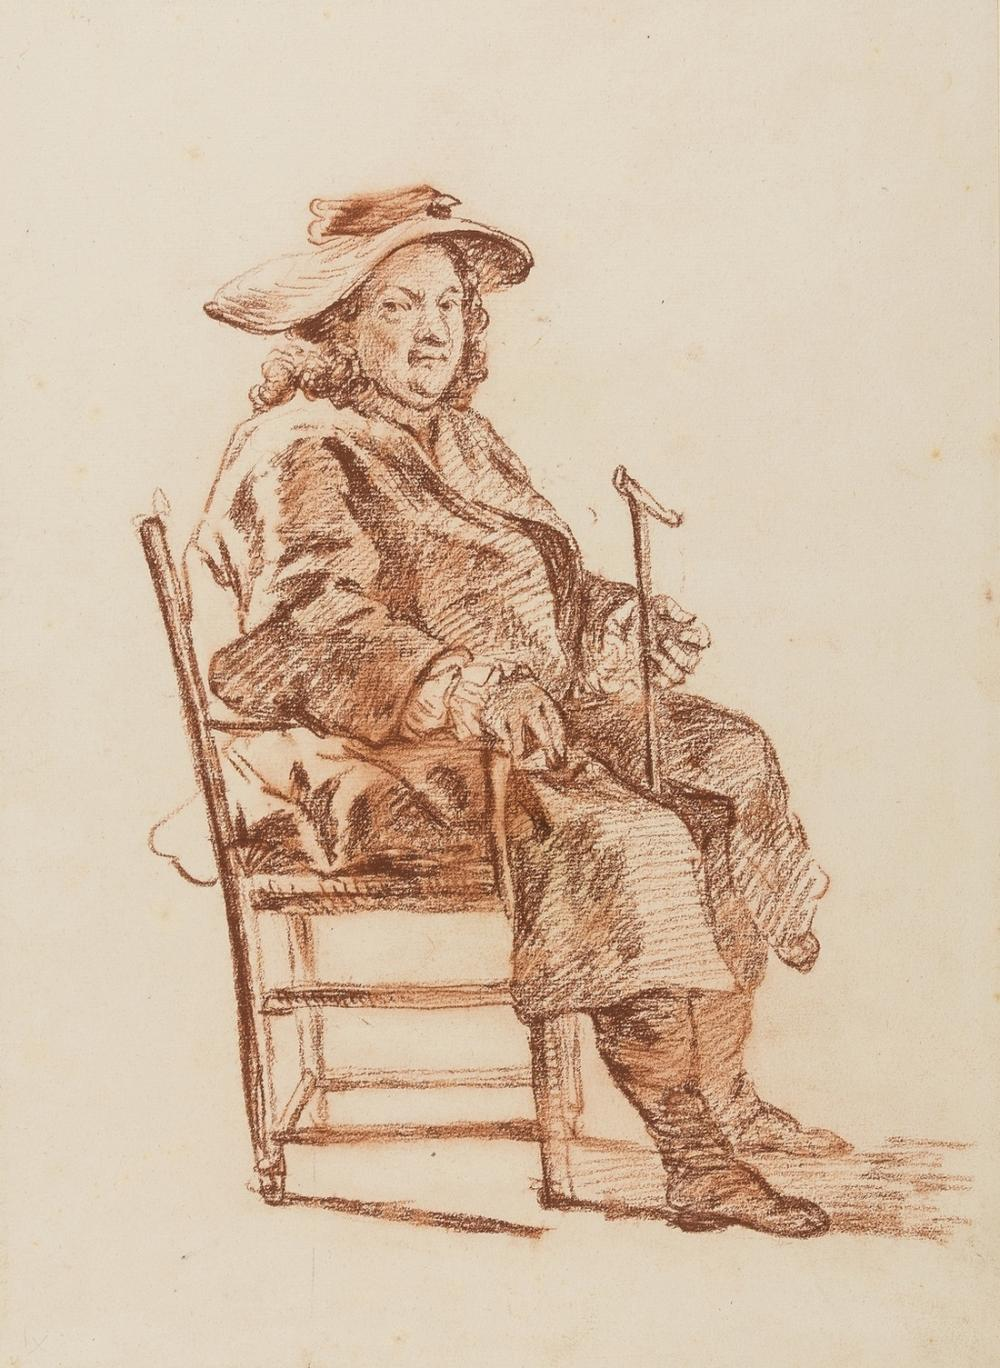 Hogarth (Follower of William, 1697-1764) Portrait of seated gentleman wearing travelling clothes and holding a walking stick.